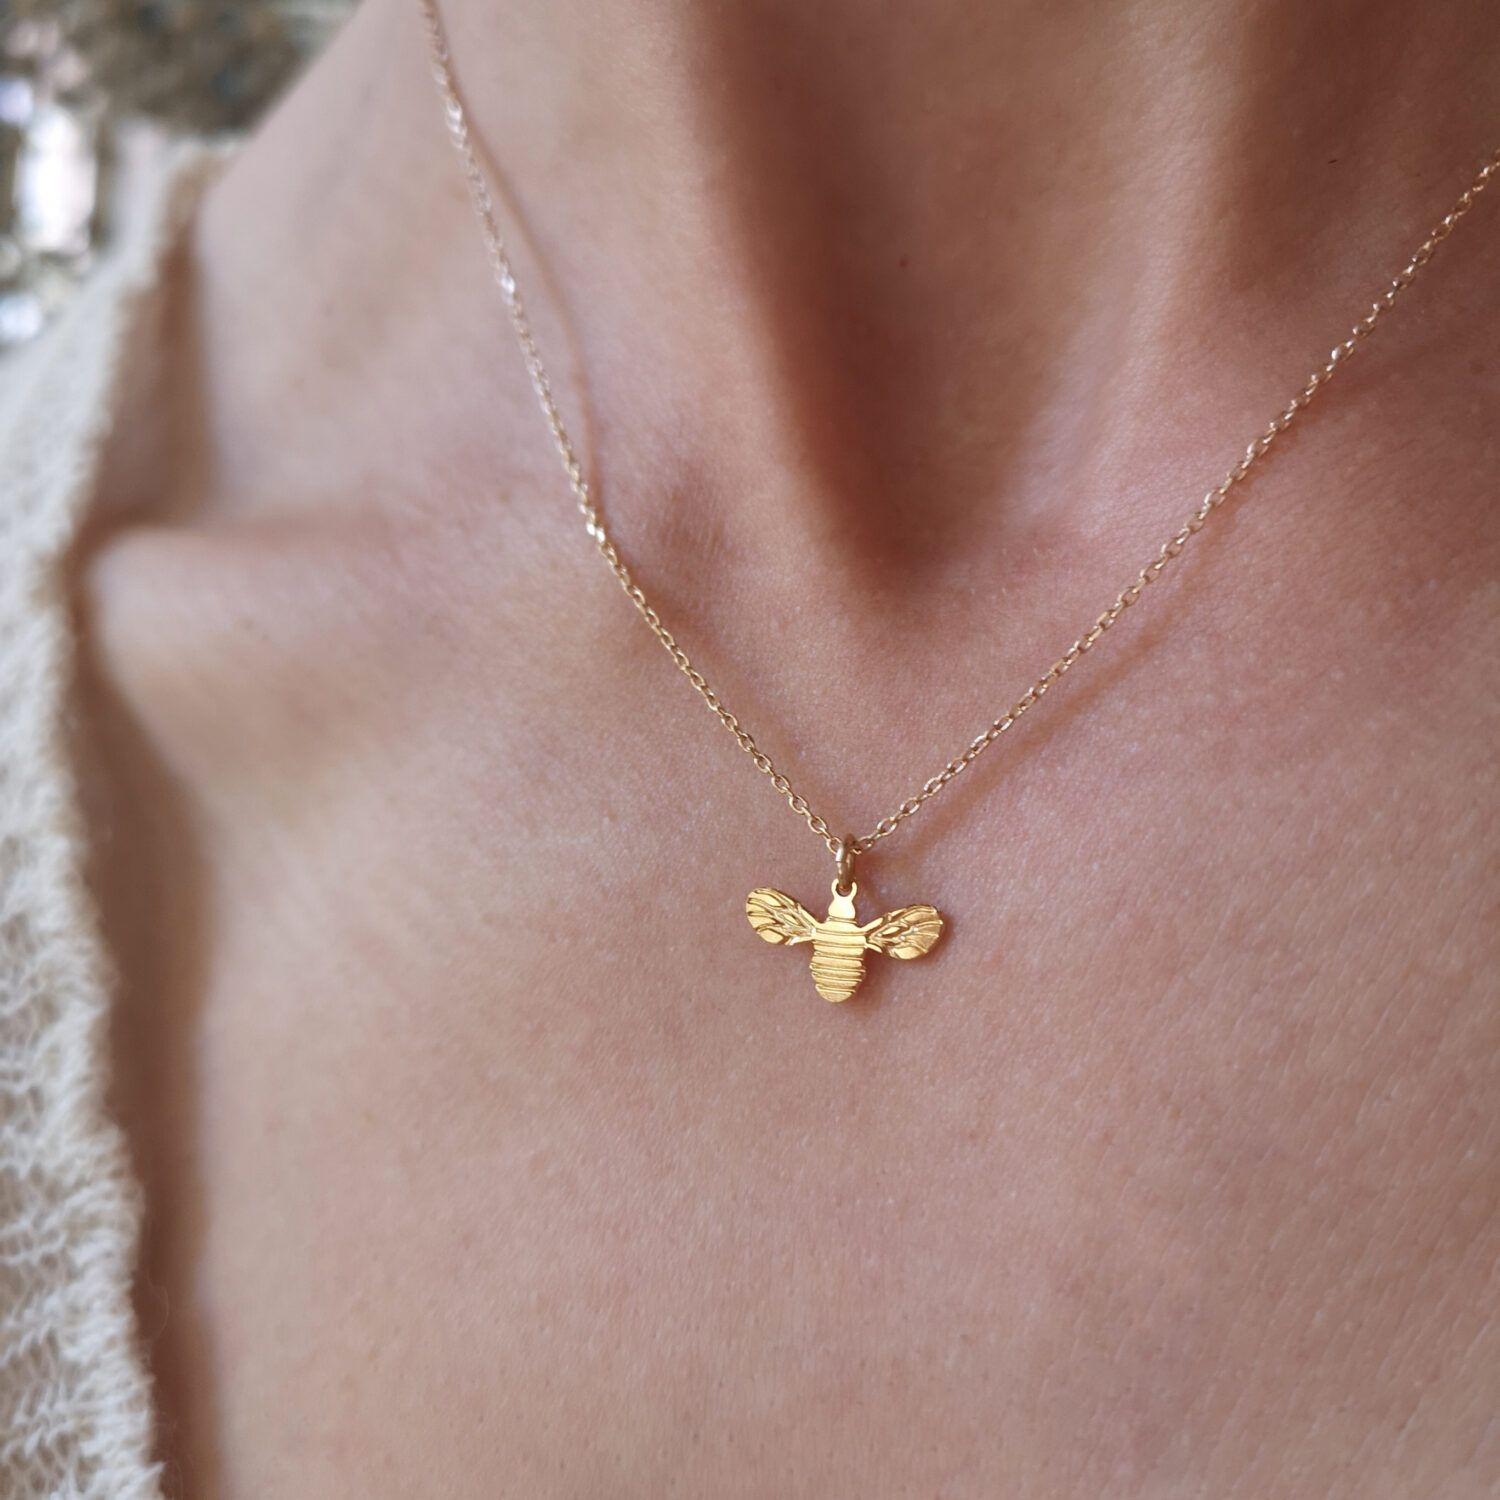 The Bee Necklace